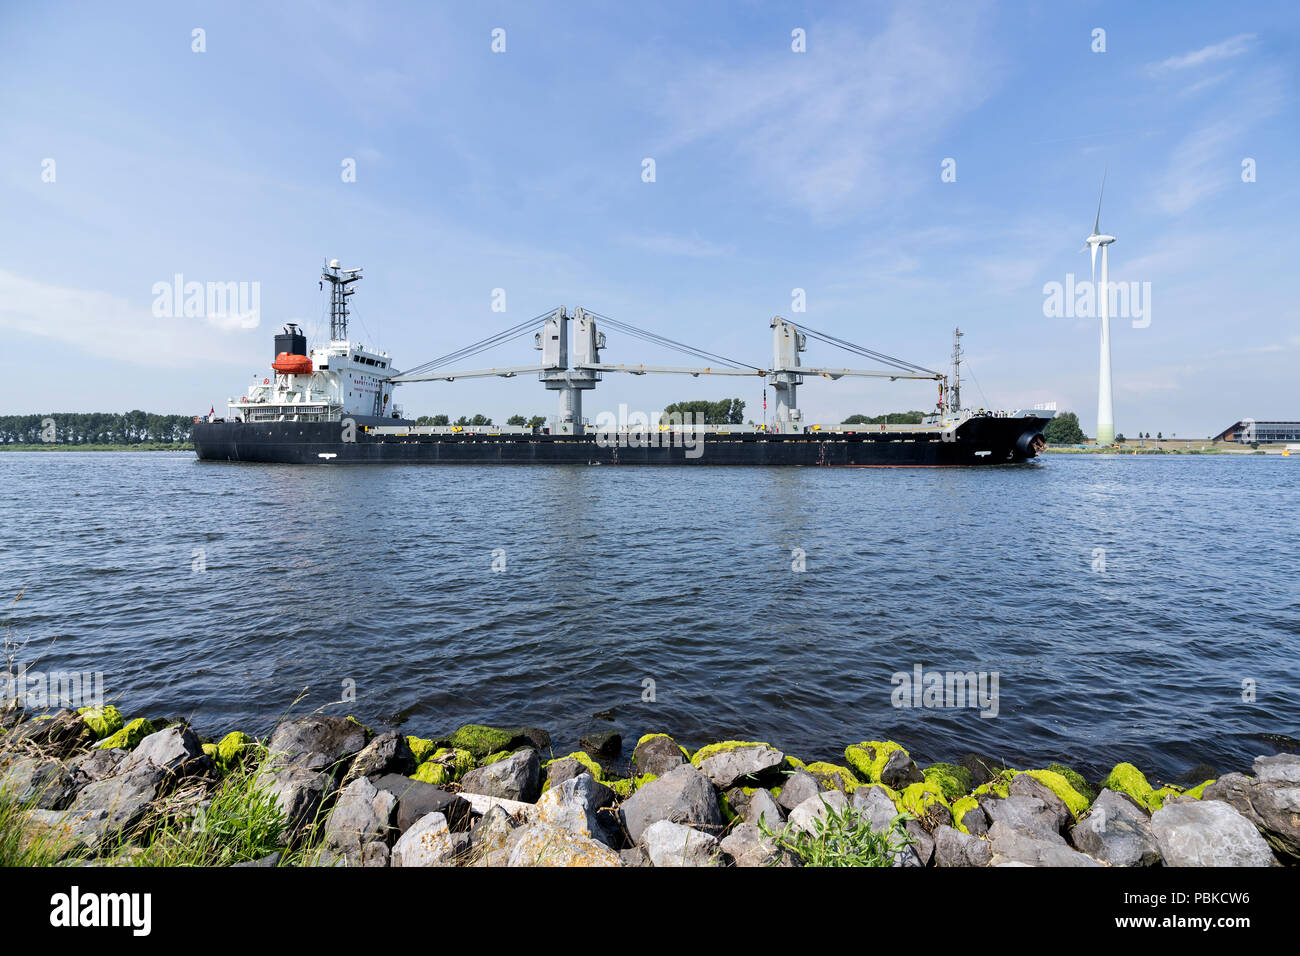 general cargo vessel shipping on canal - Stock Image